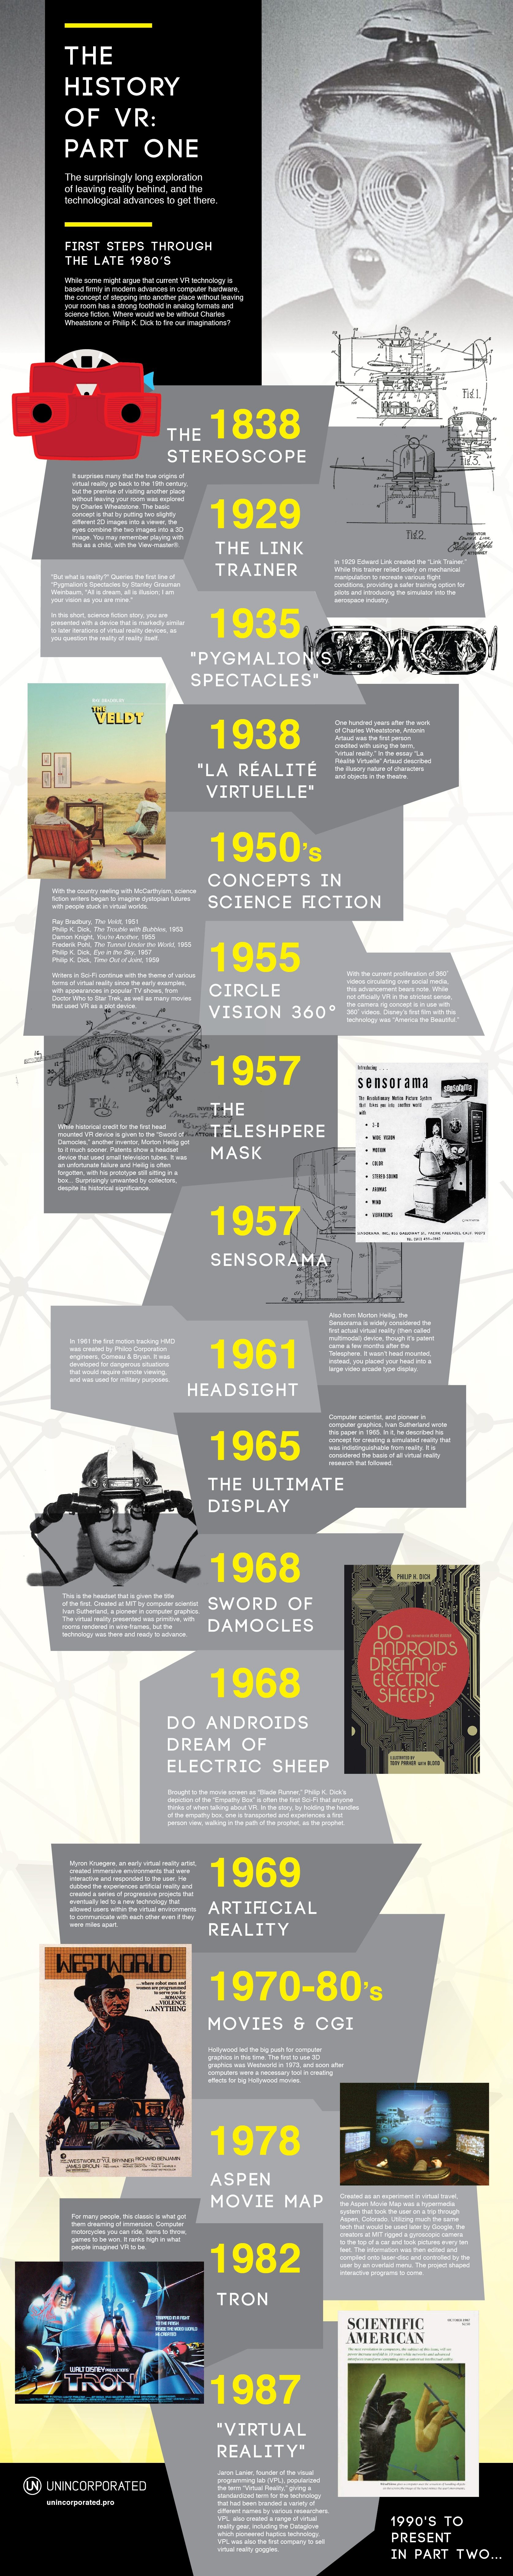 Virtual Reality Timeline Infographic